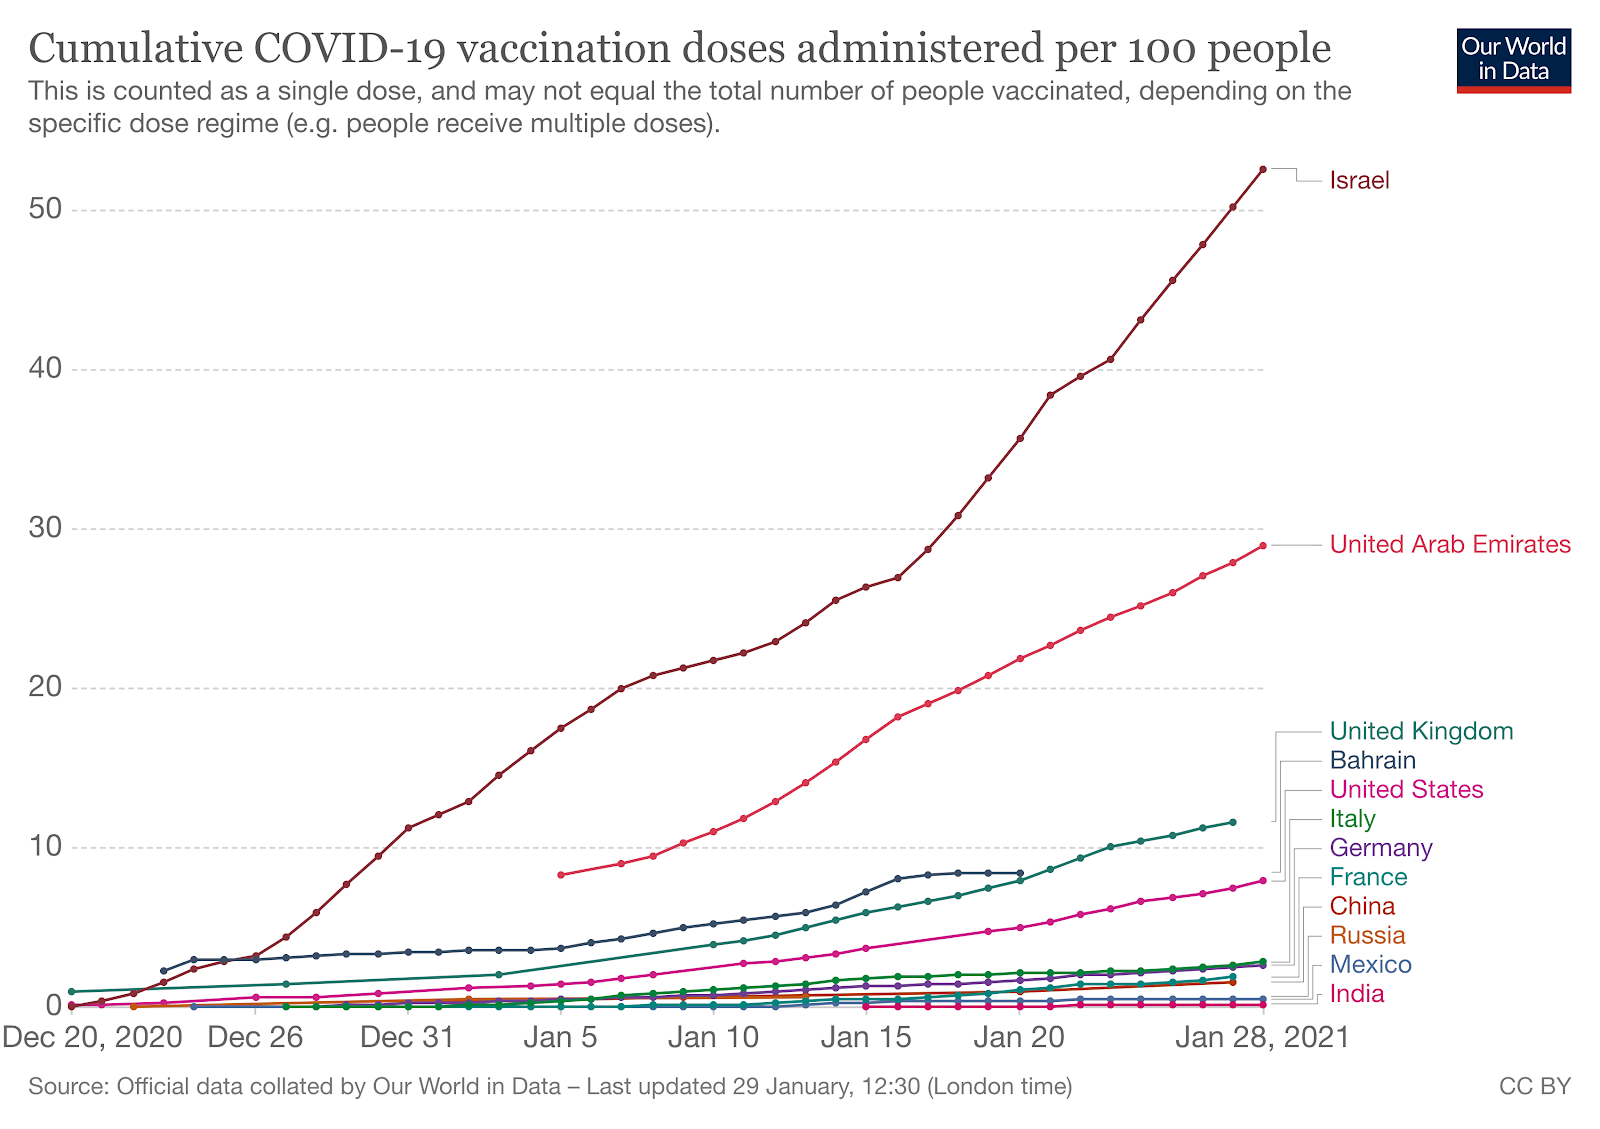 graph depicting the cumulative COVID-19 vaccination doses administered per 100 people globally